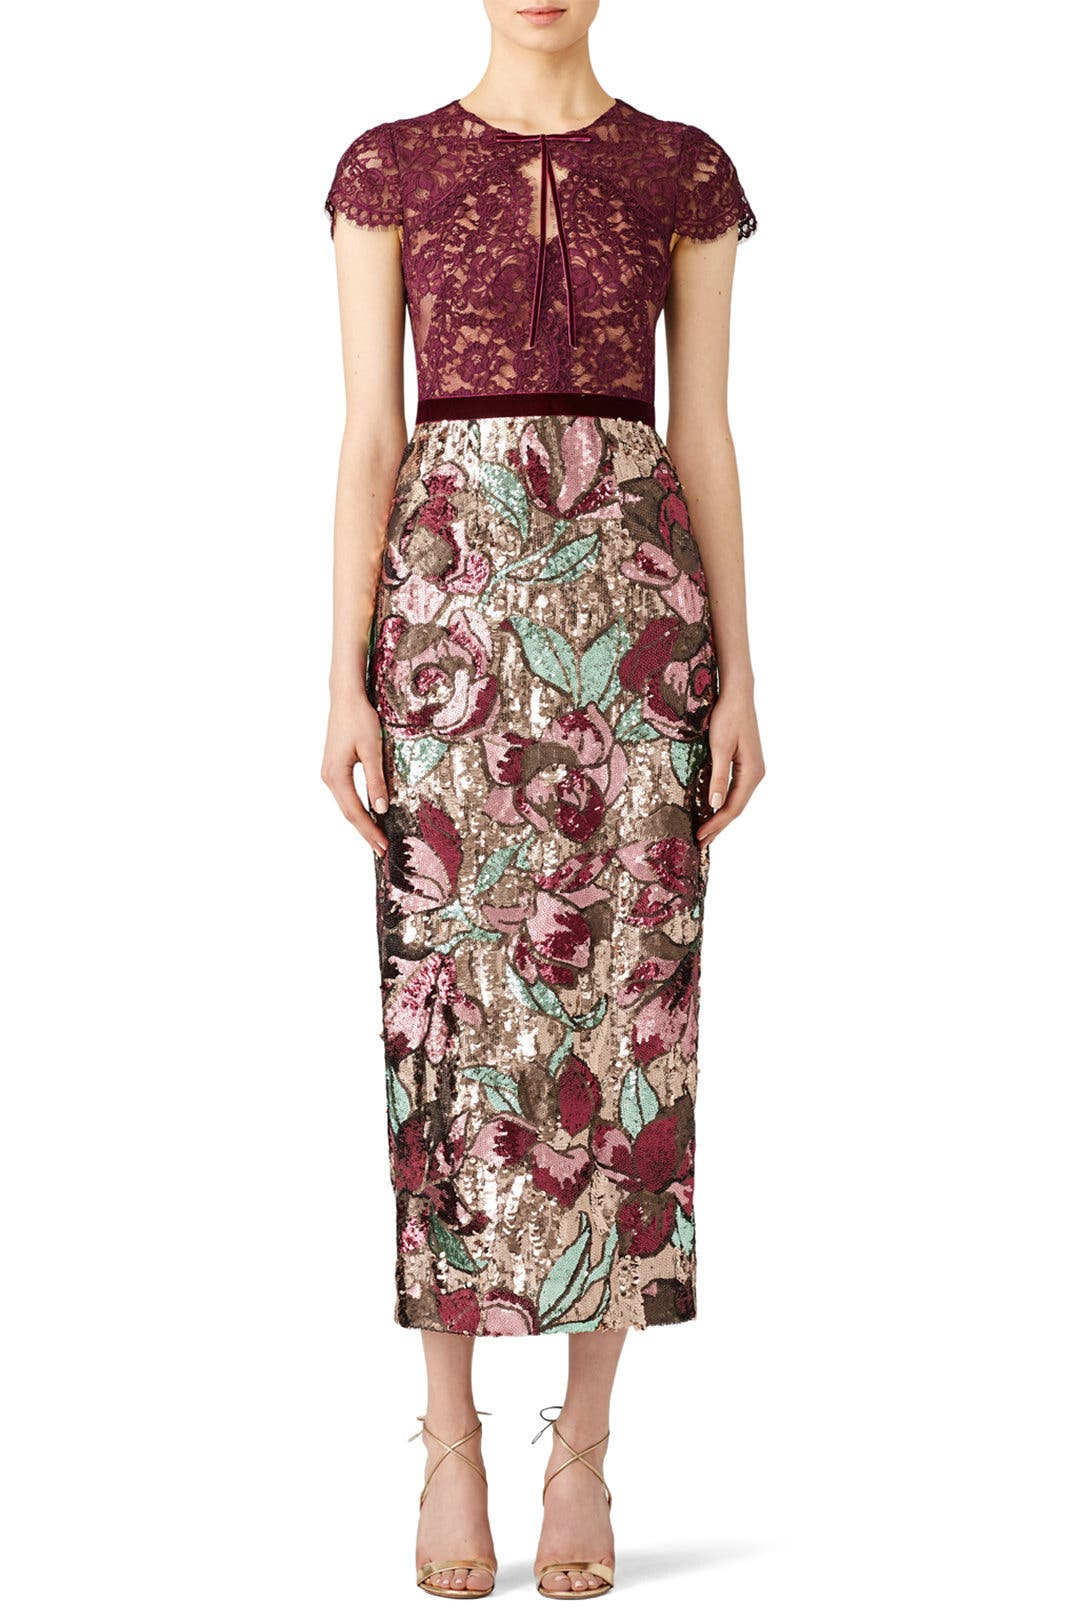 7462c75e9789f8 Artwork Sequin Dress by Marchesa Notte for  150 -  160